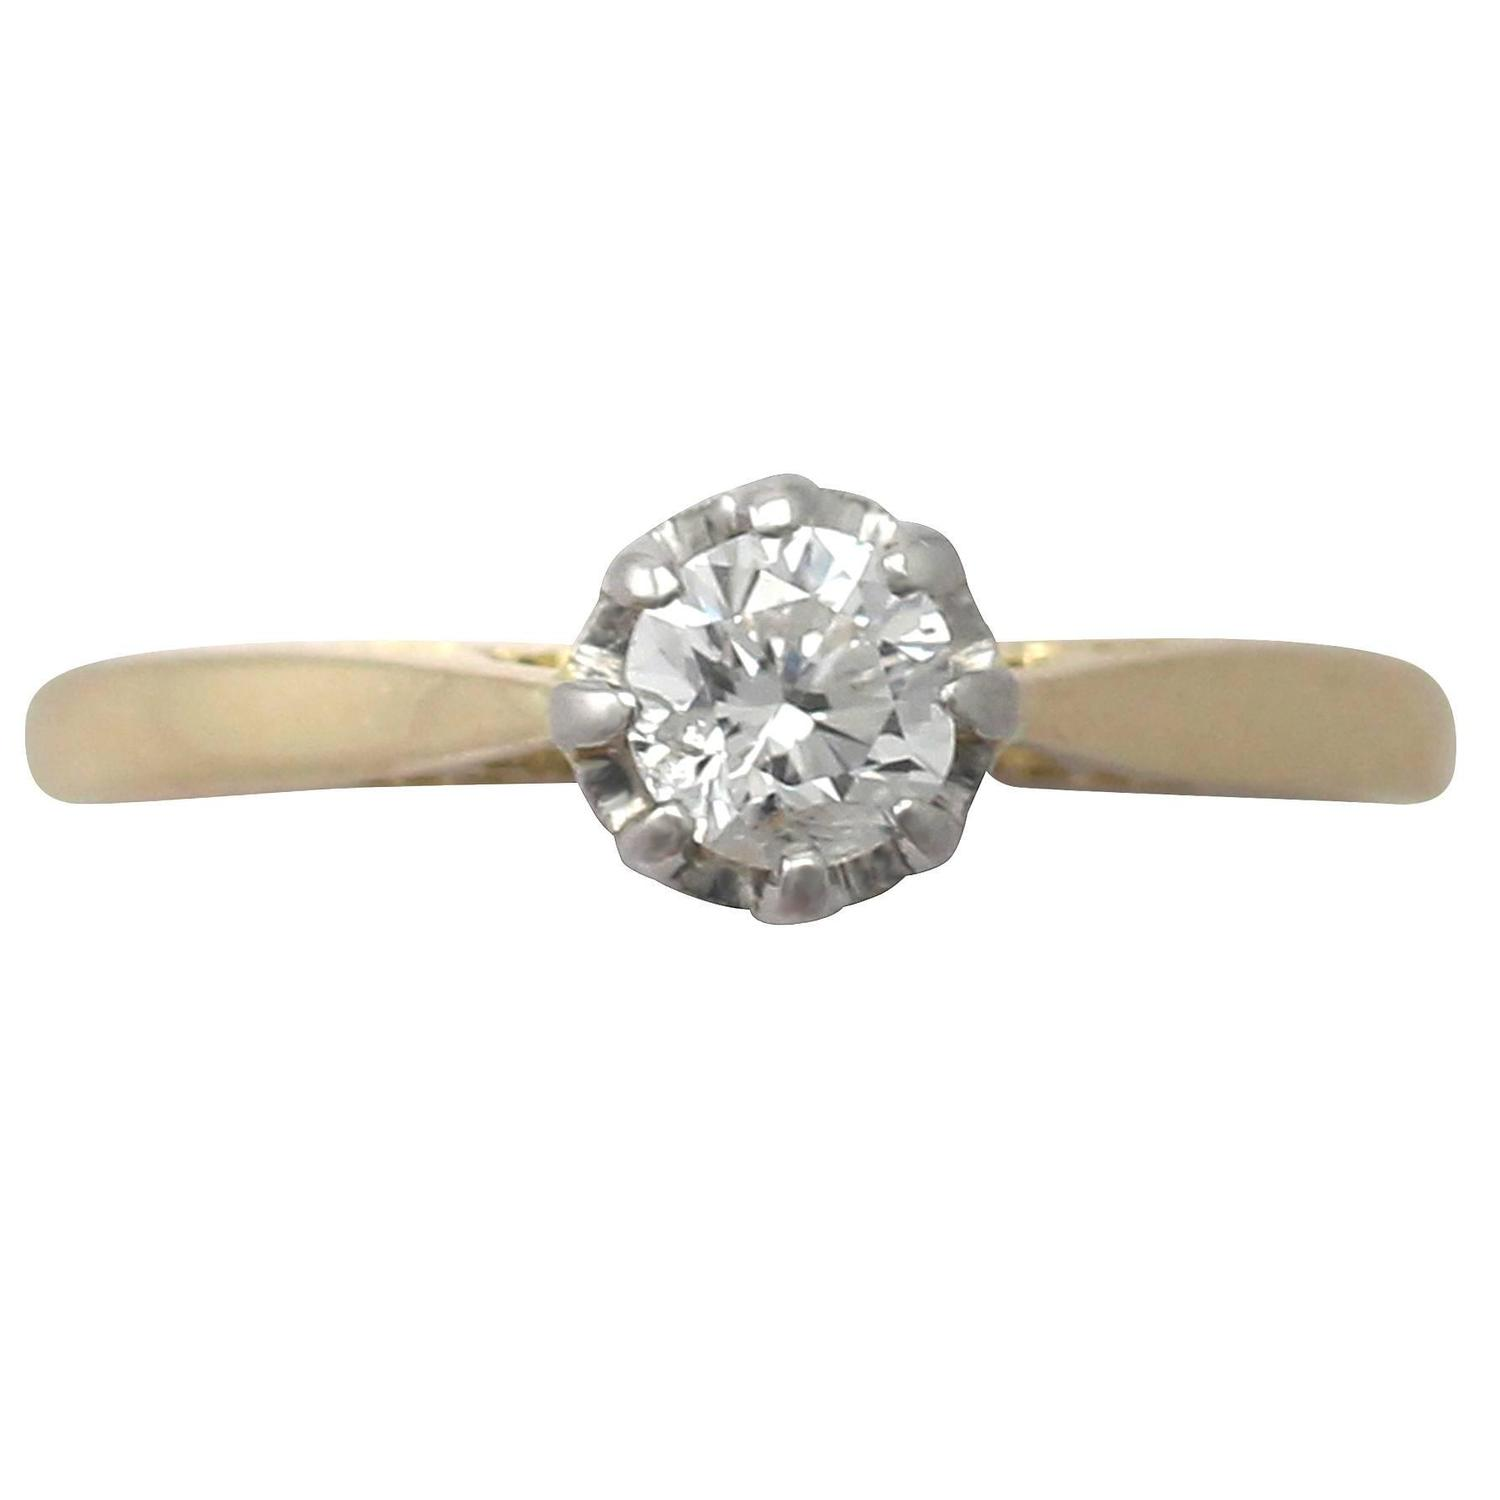 esme platinum image solitaire jeweller collection the laings ring shoulders engagement diamond